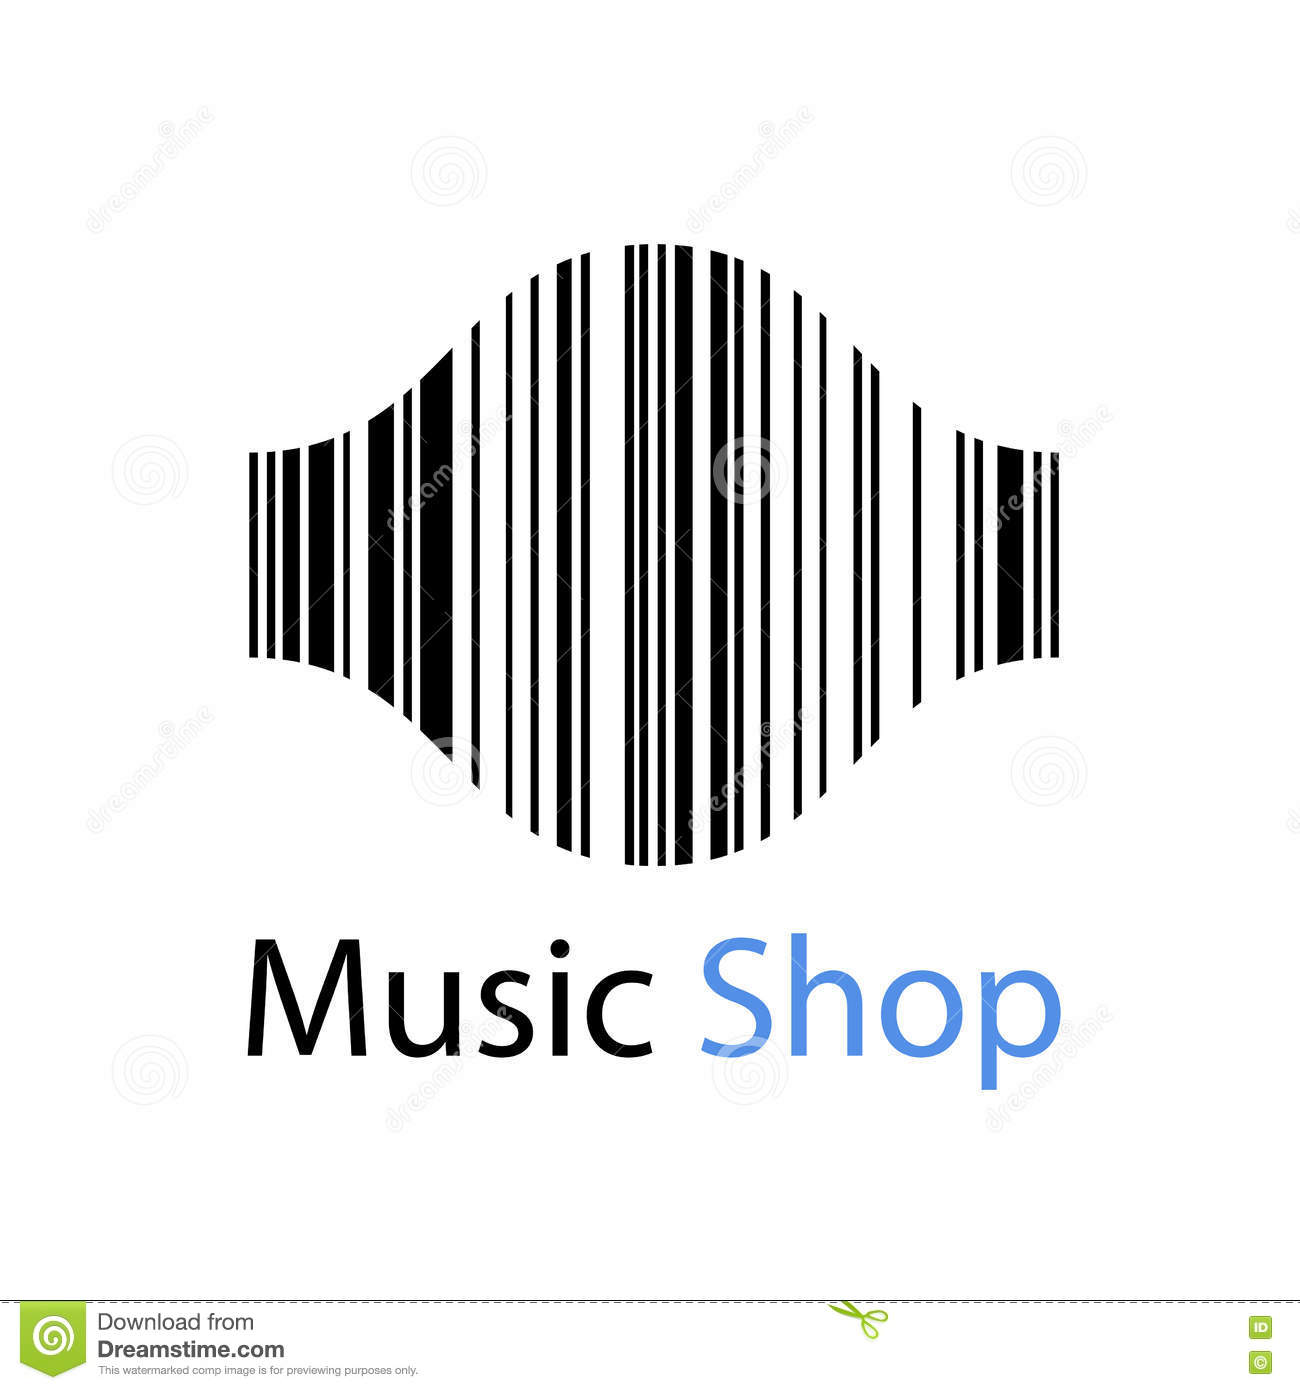 Add music albums using a barcode scanner.